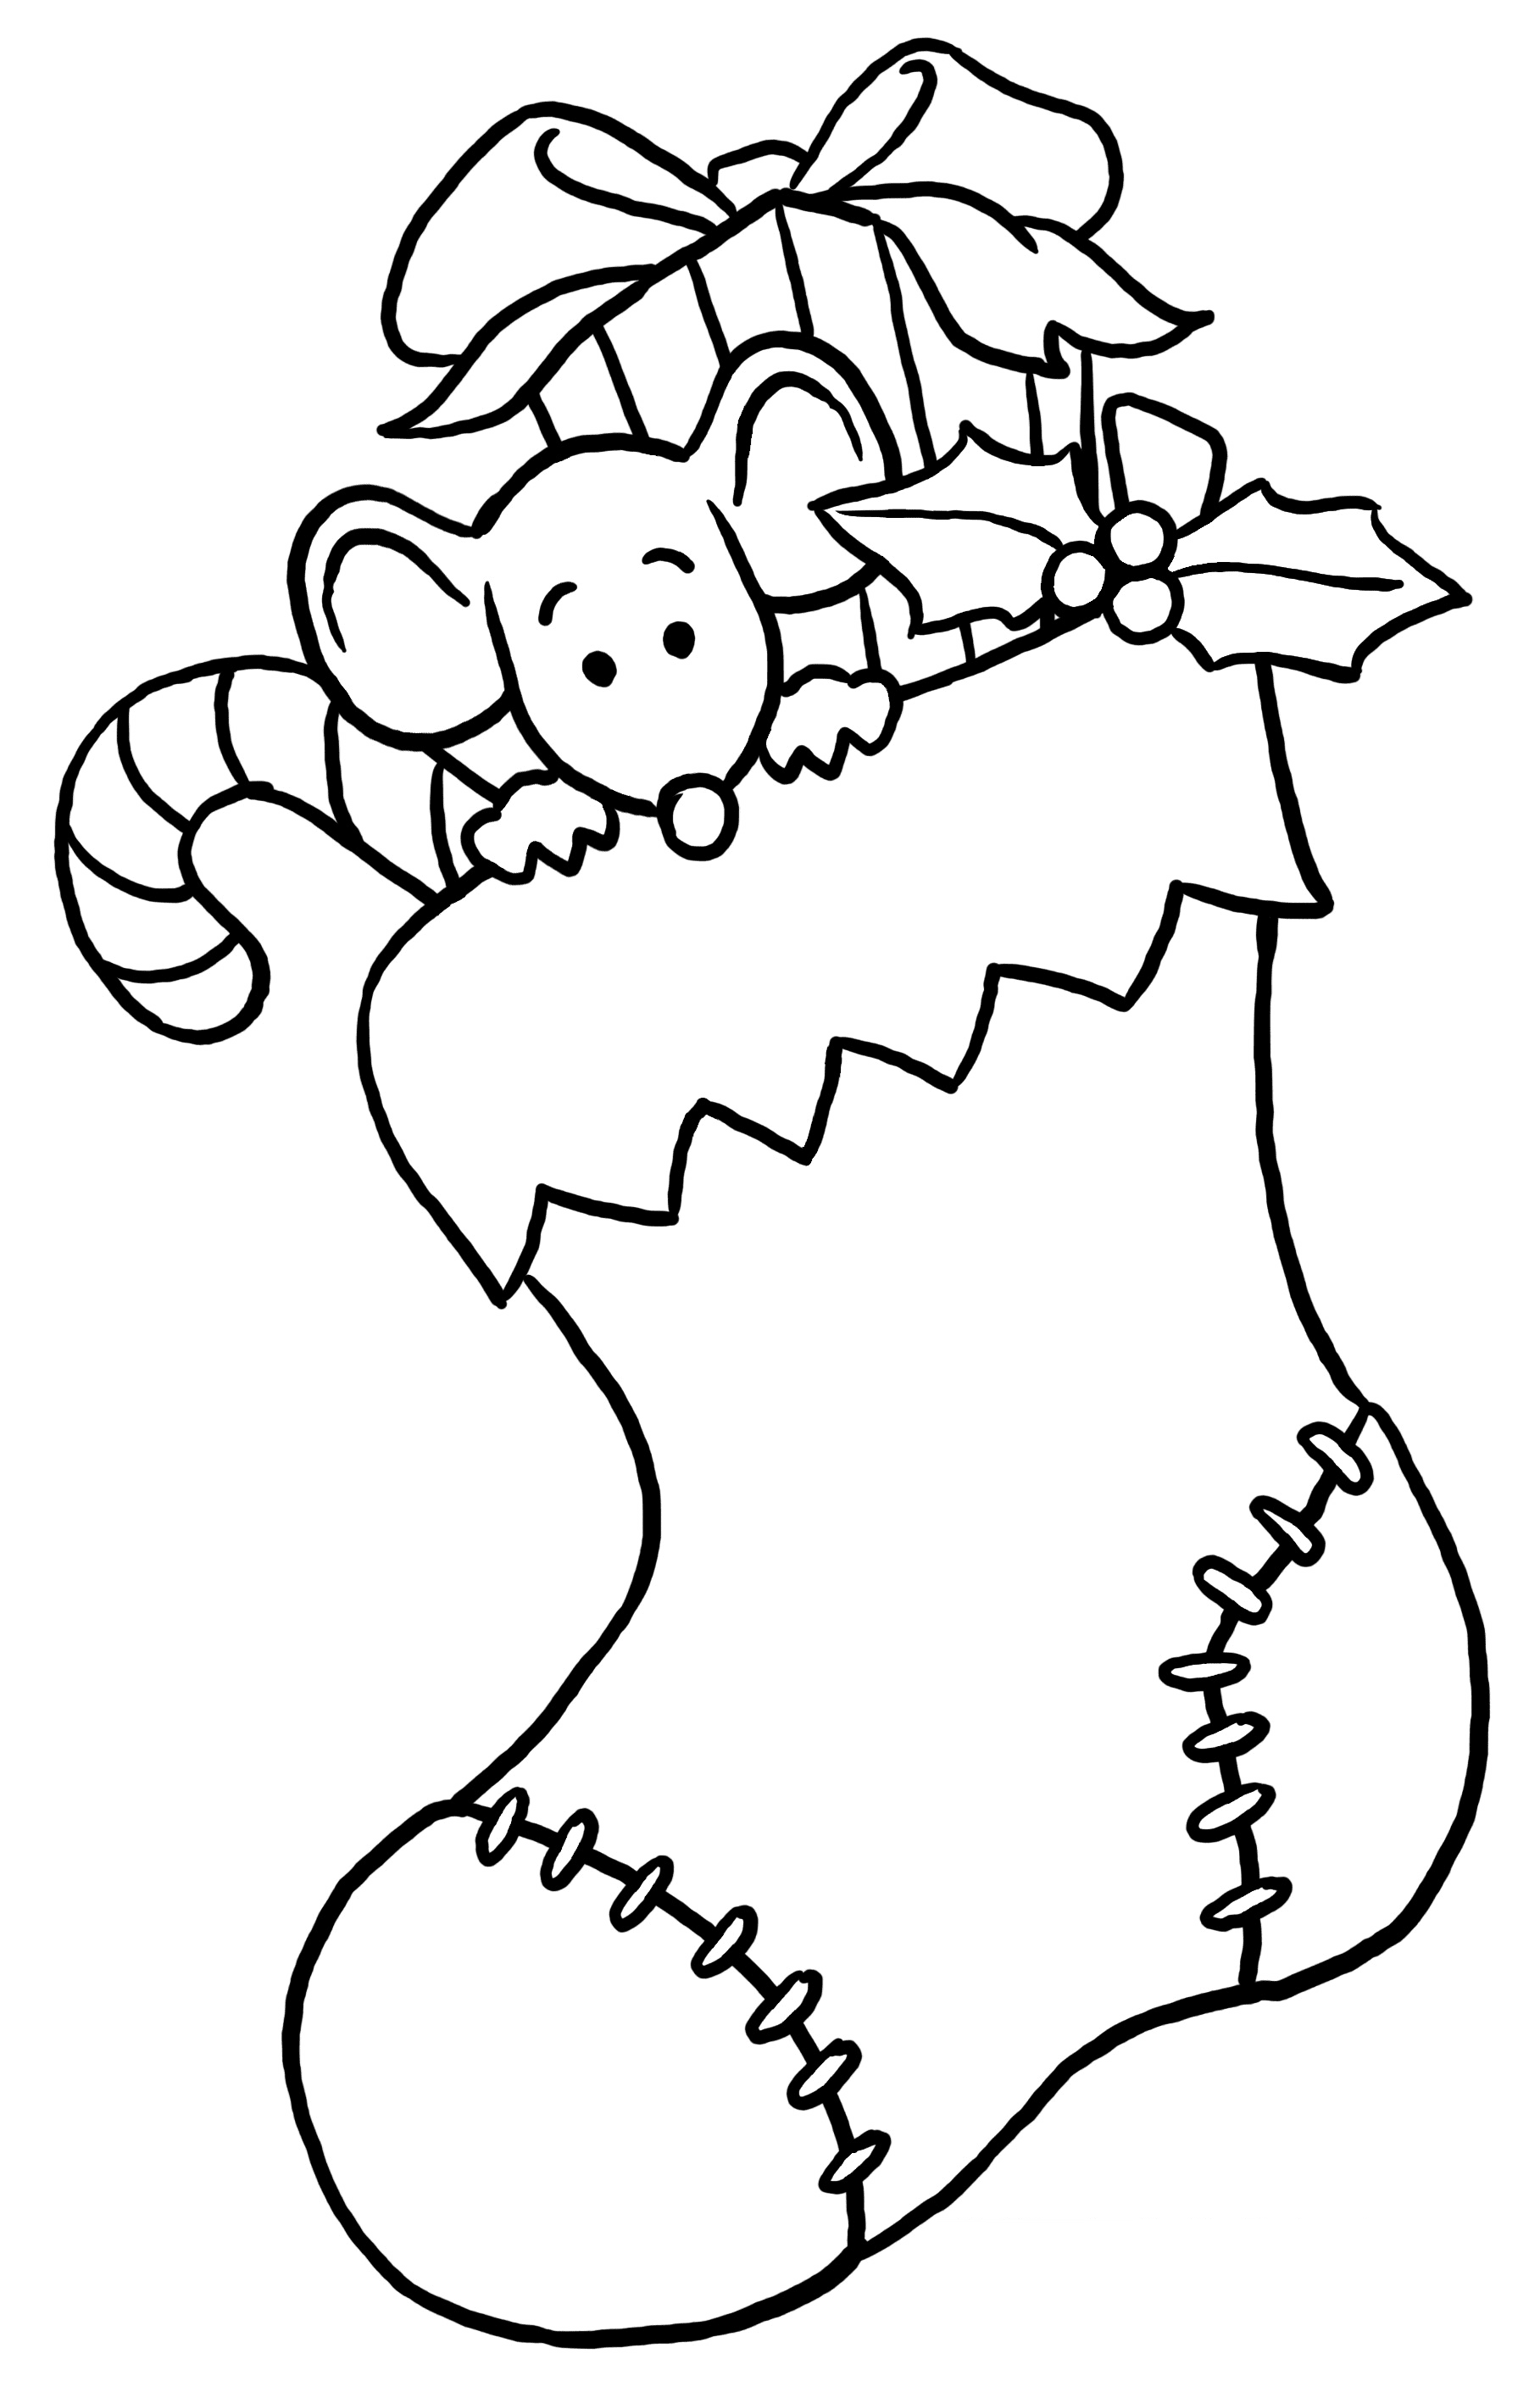 Christmas Coloring Pages For Preschoolers Printable  2019207